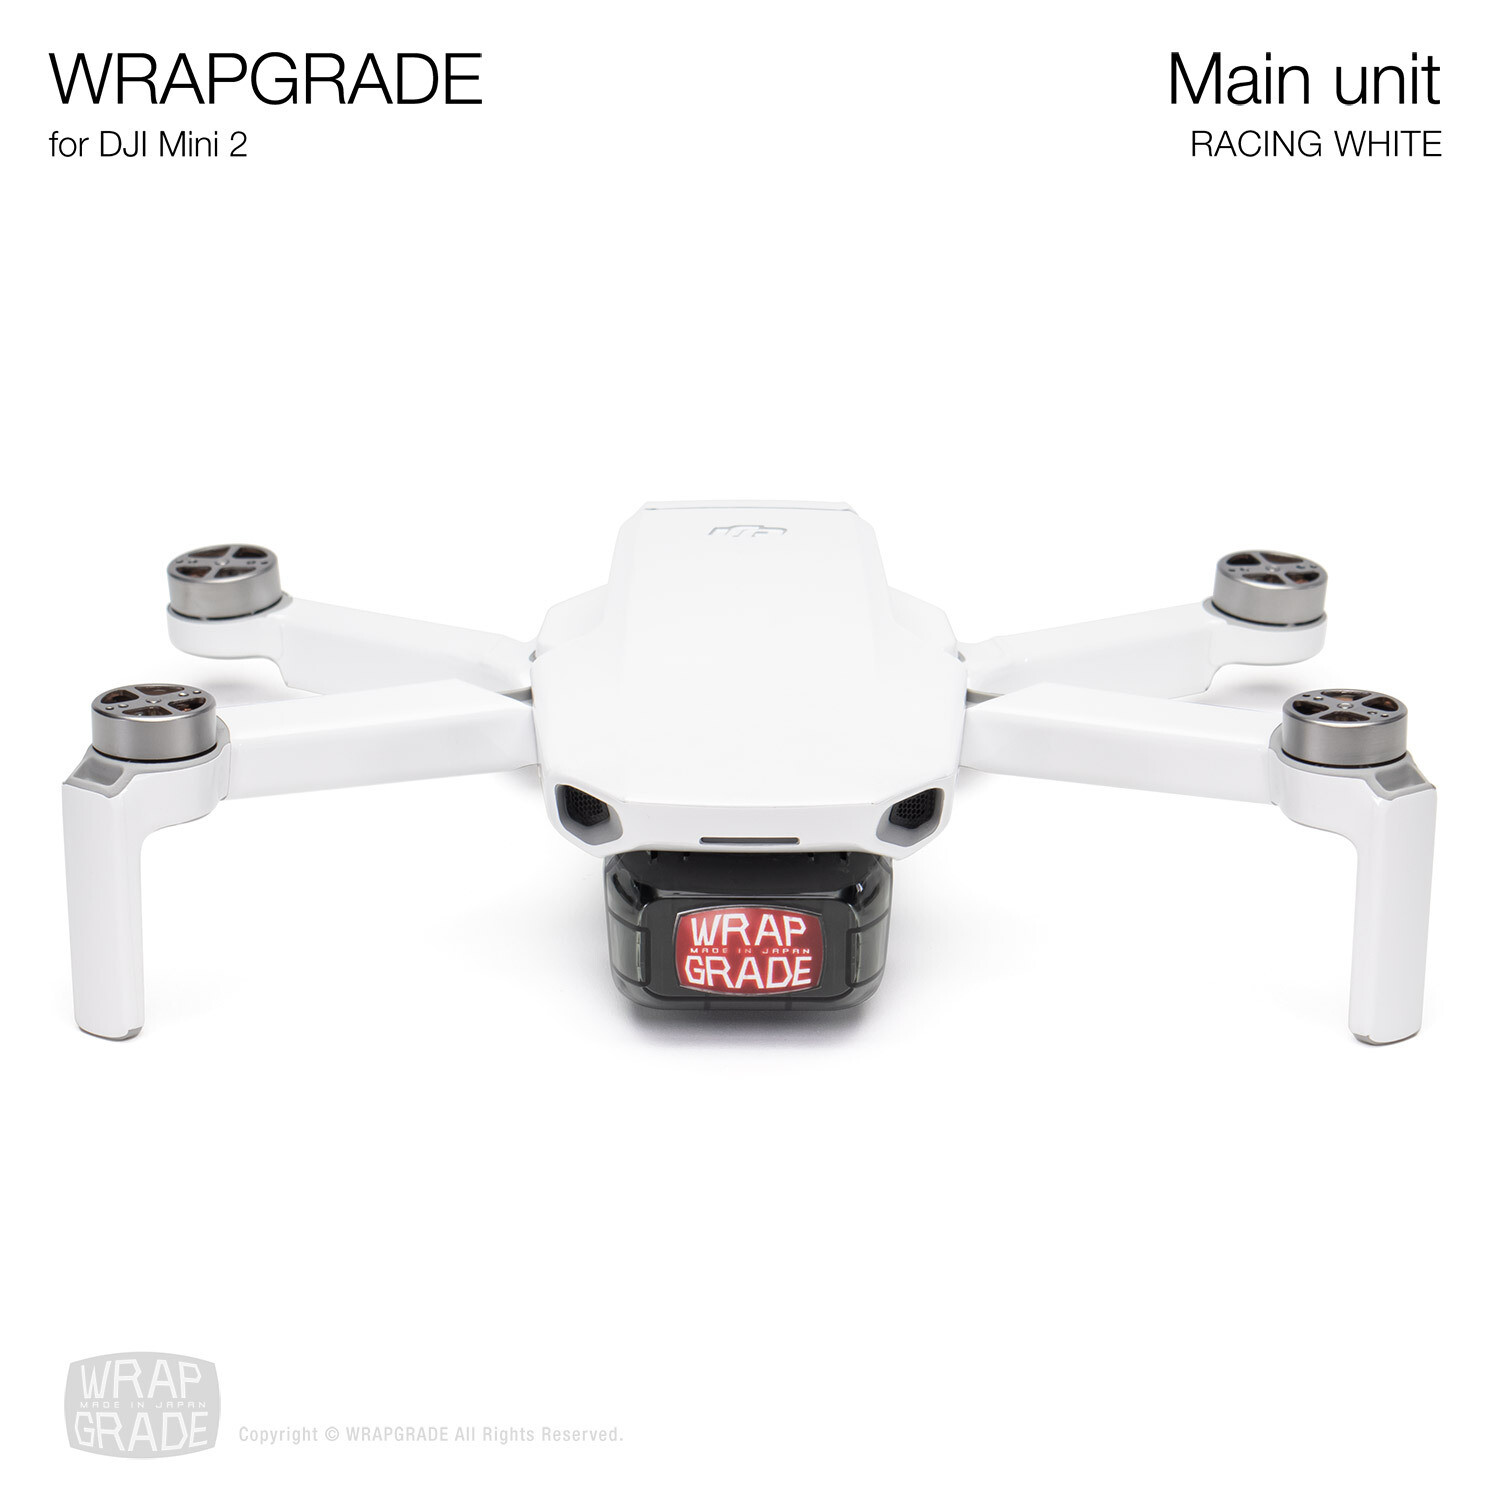 Wrapgrade Poly Skin for DJI Mini 2 | Main Unit (RACING WHITE)